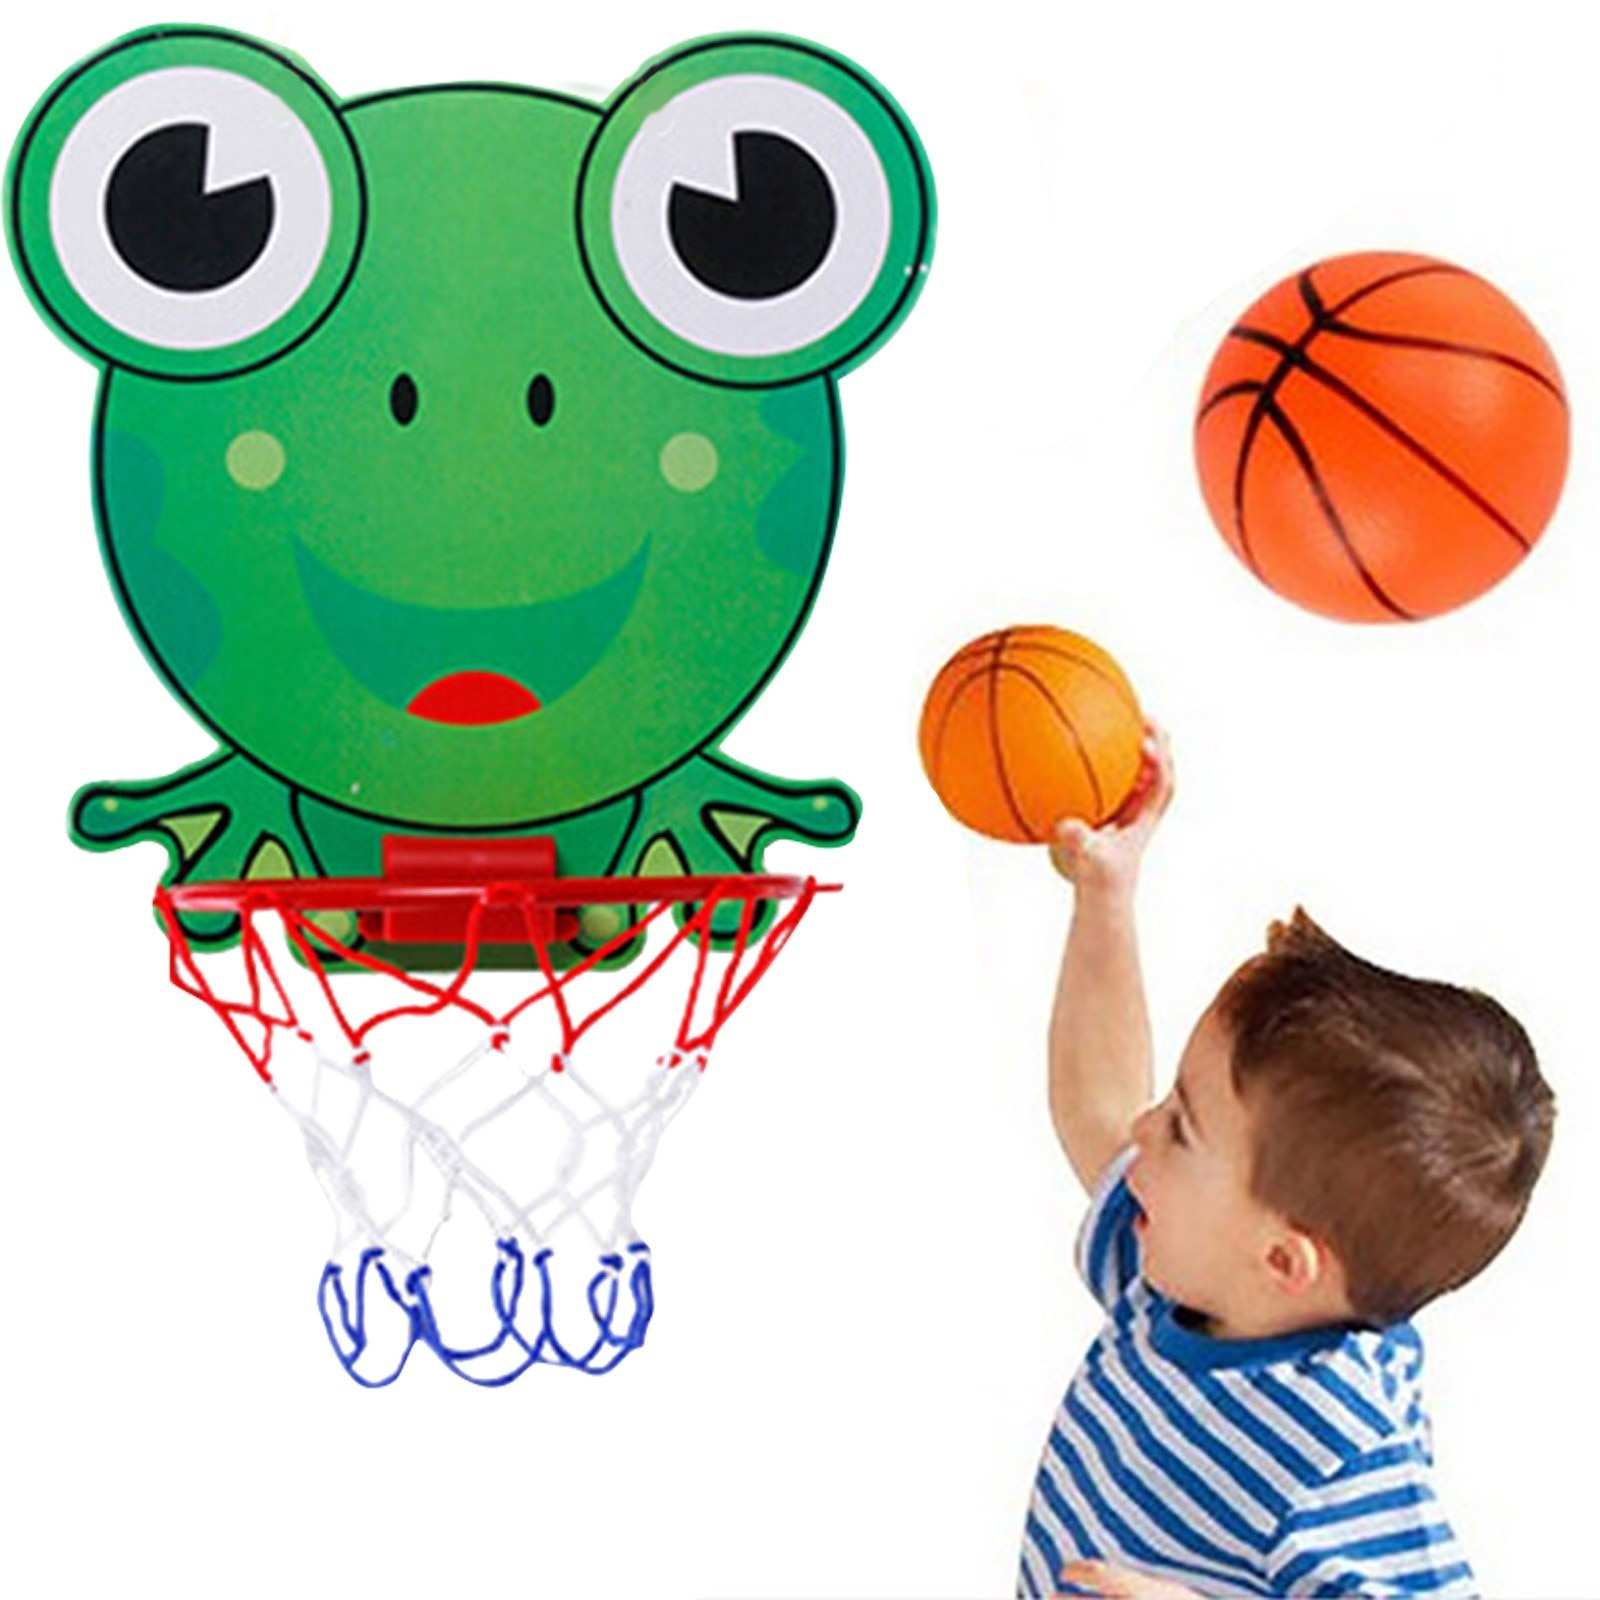 Фото - Plastic Game Hanging Educational Hoop Interactive Parent-child Plastic Indoor Toys Board Set With Basketball Toy Hoop Kids Hoops 2021 novelty kids bean bag toss game toys outdoor dart board game game toy set fun parent child interaction educational game